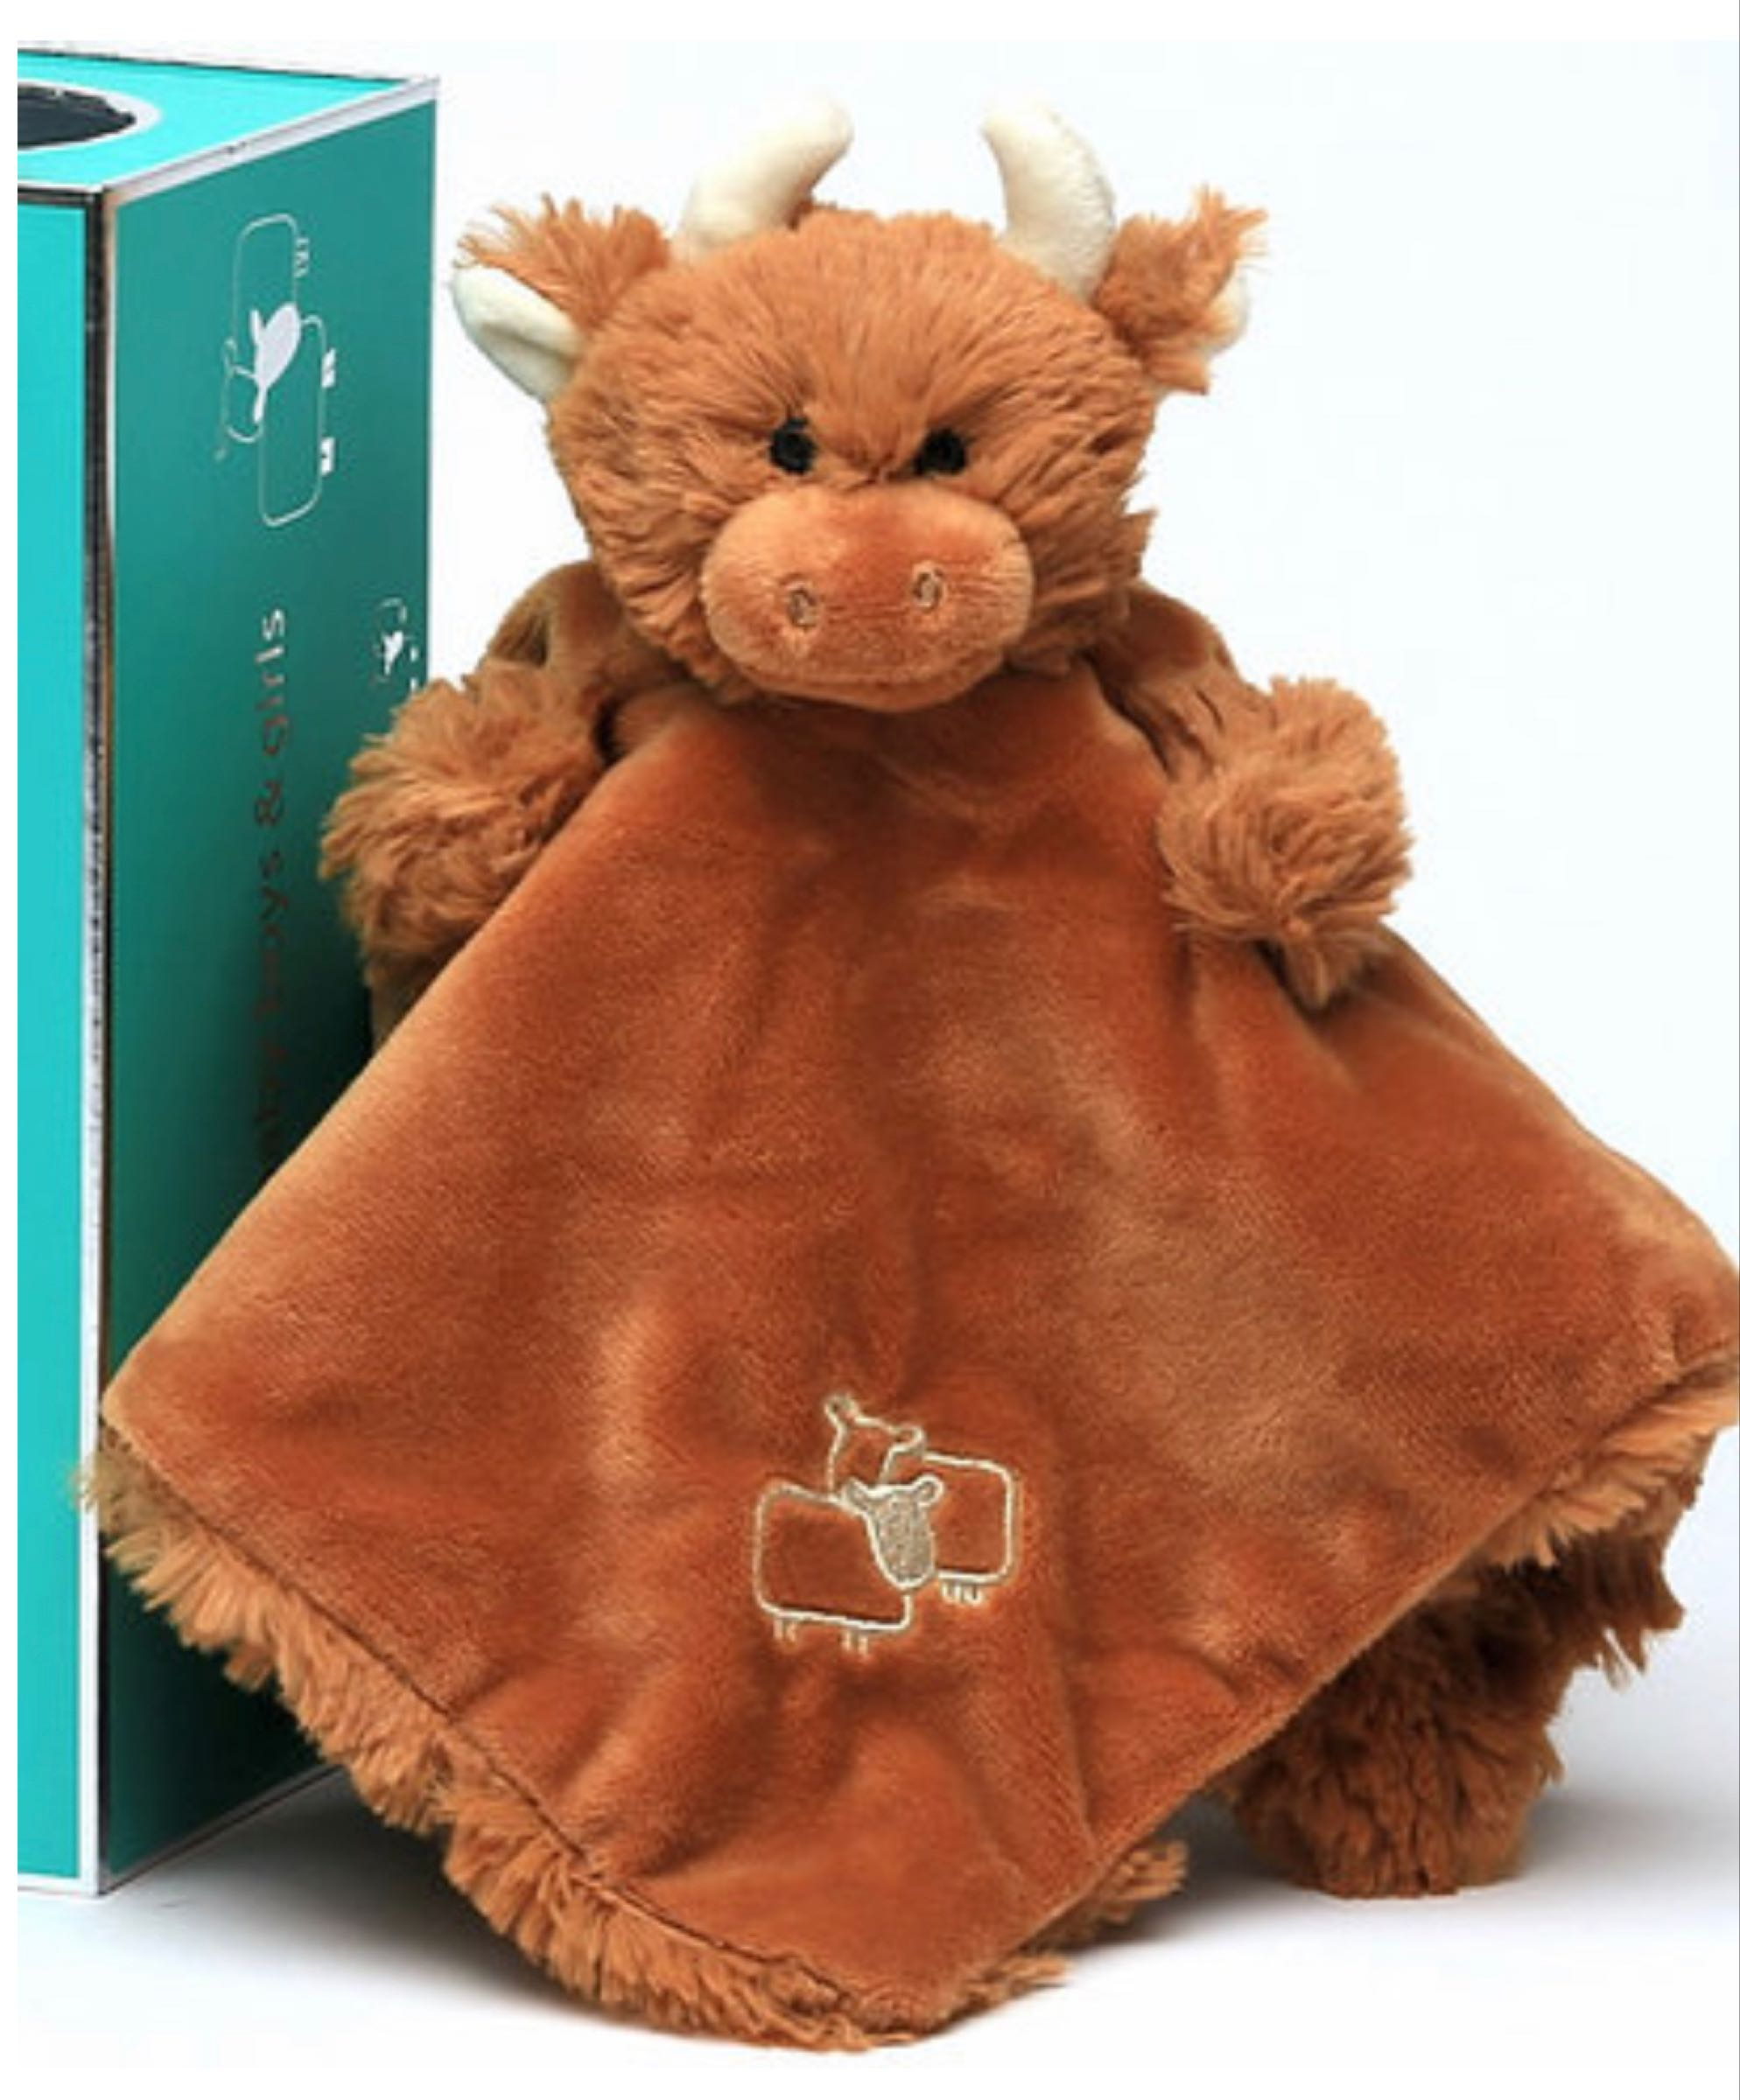 Jomanda  highland cow soother /finger puppet